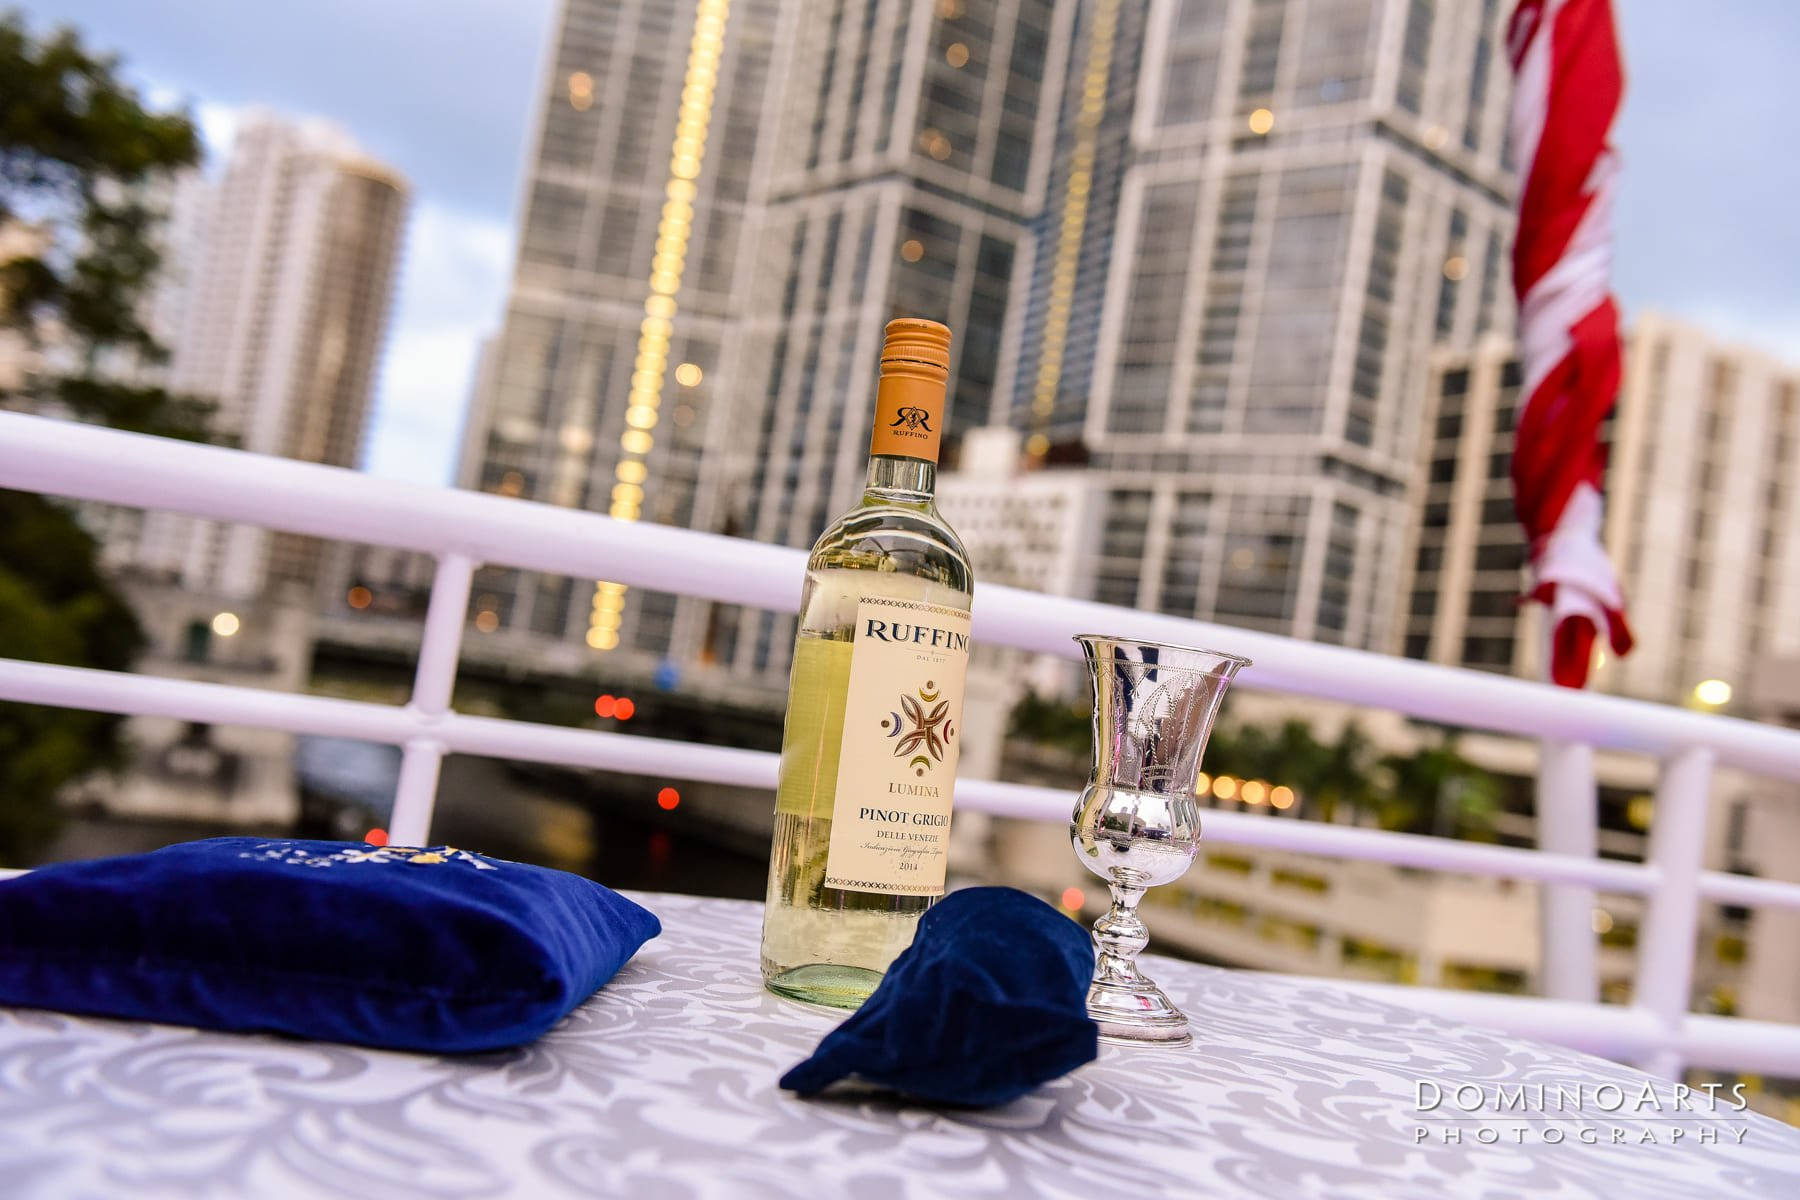 Yacht Dinner Charter. Yacht Charter Dining Cruises for you and your friends.